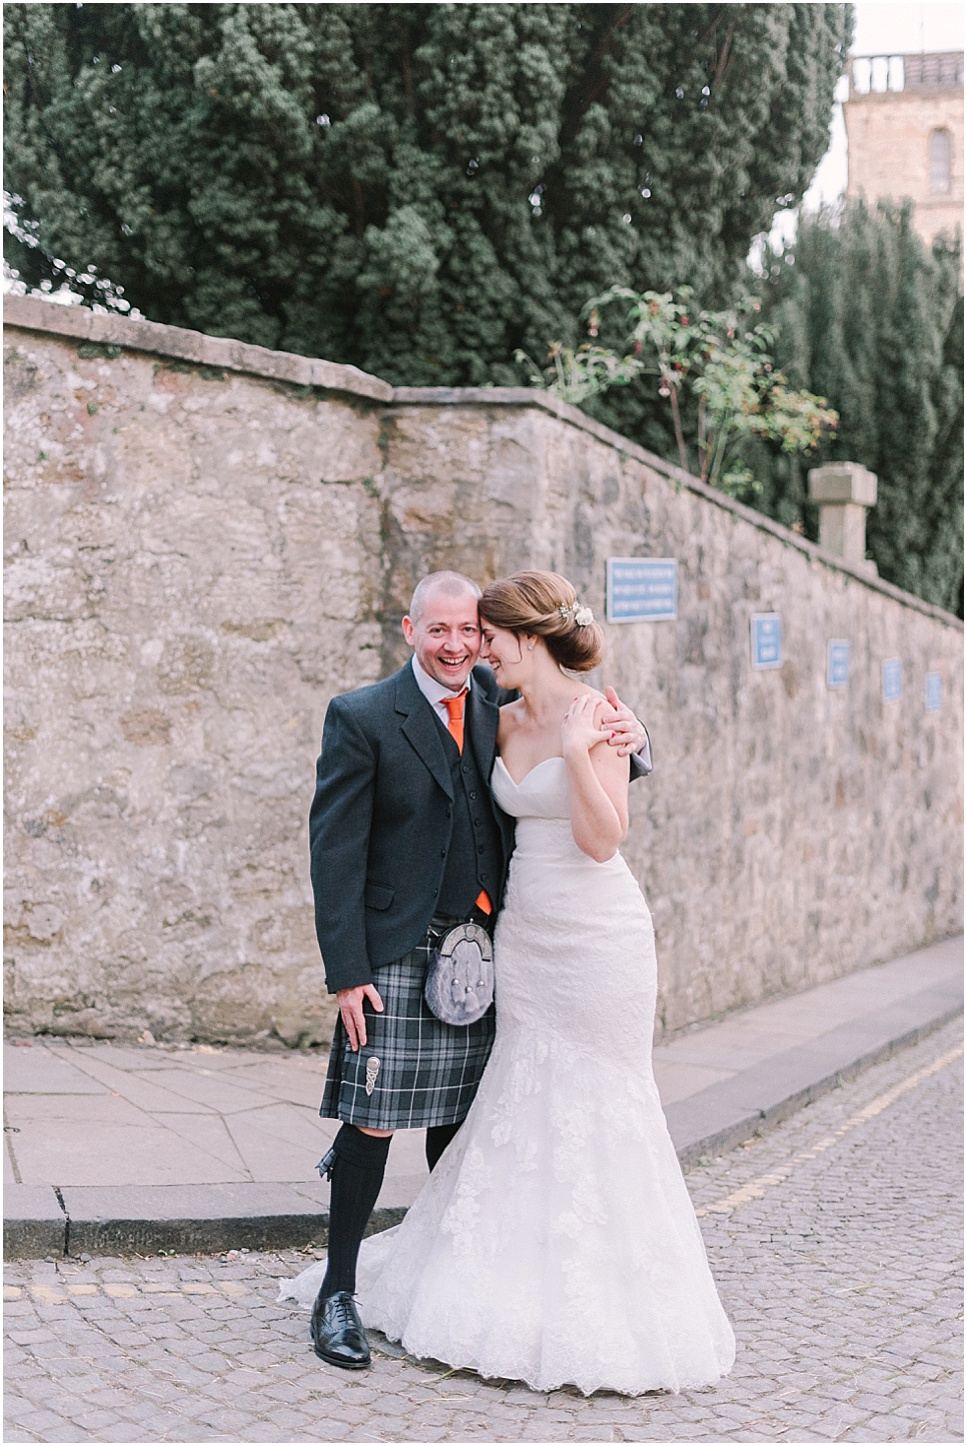 mareikemurray_wedding_photography_linlithgow_burgh_halls_061.jpg